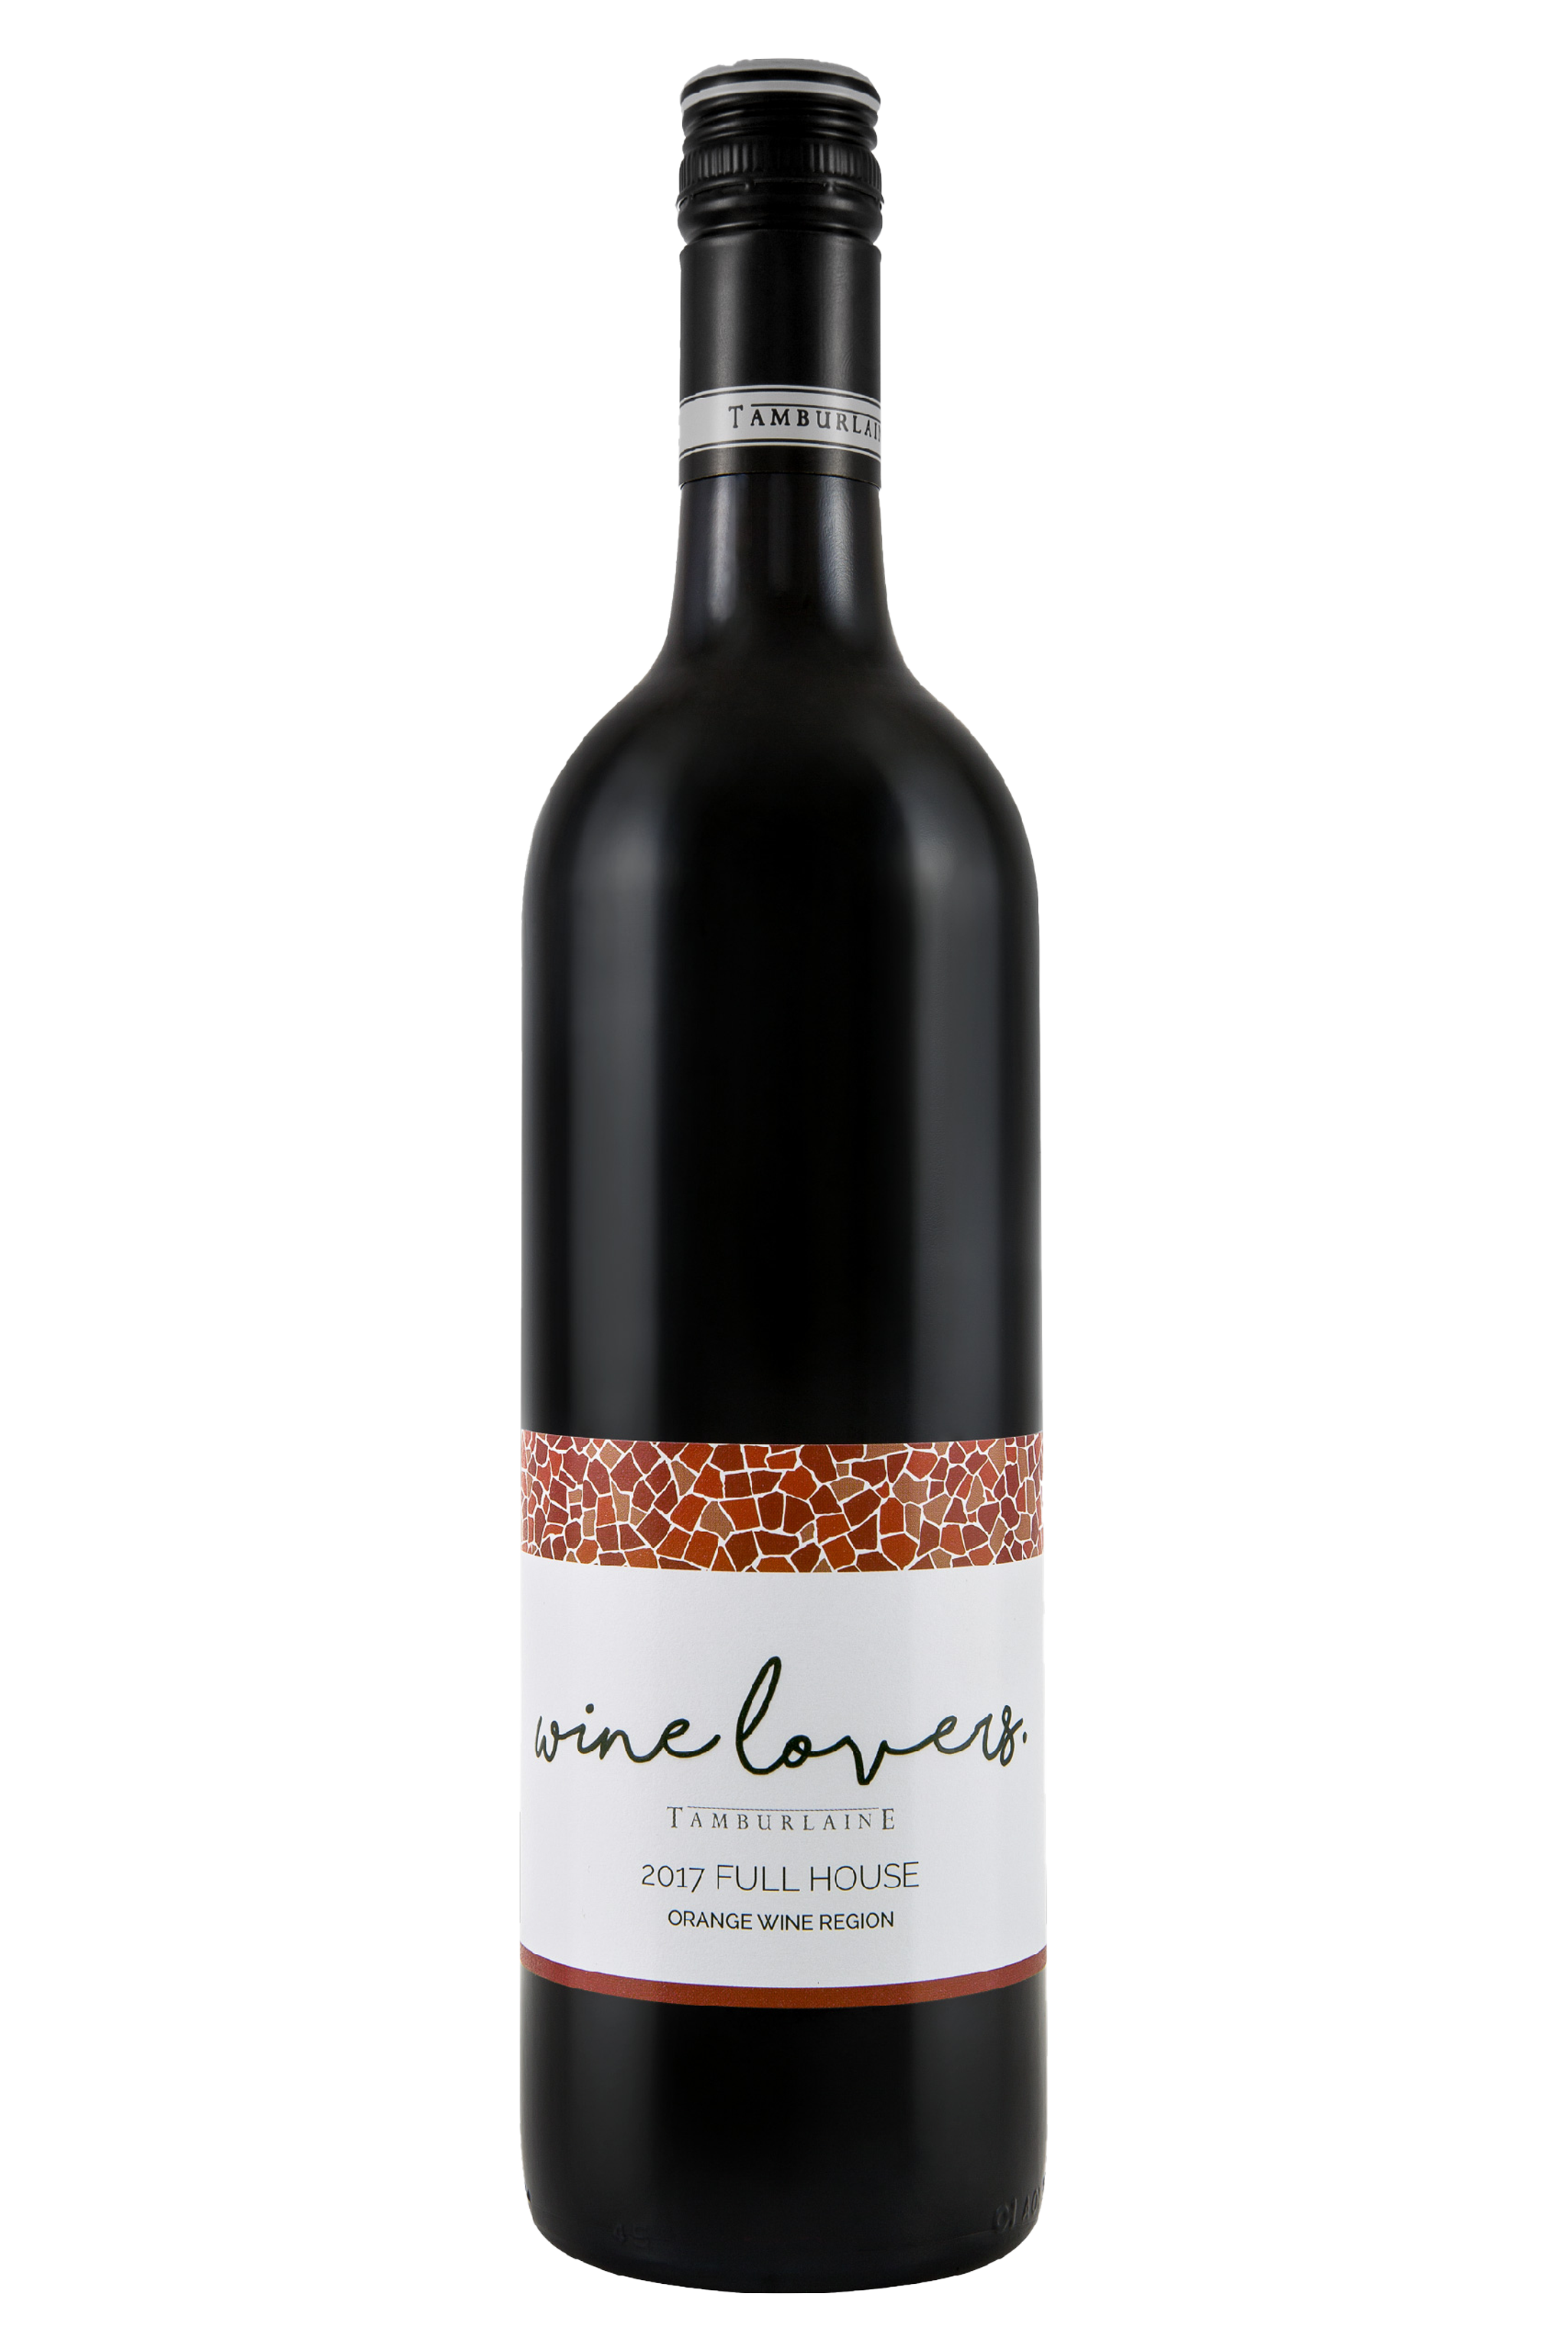 Tamburlaine 'Wine Lovers' Full House 750ml